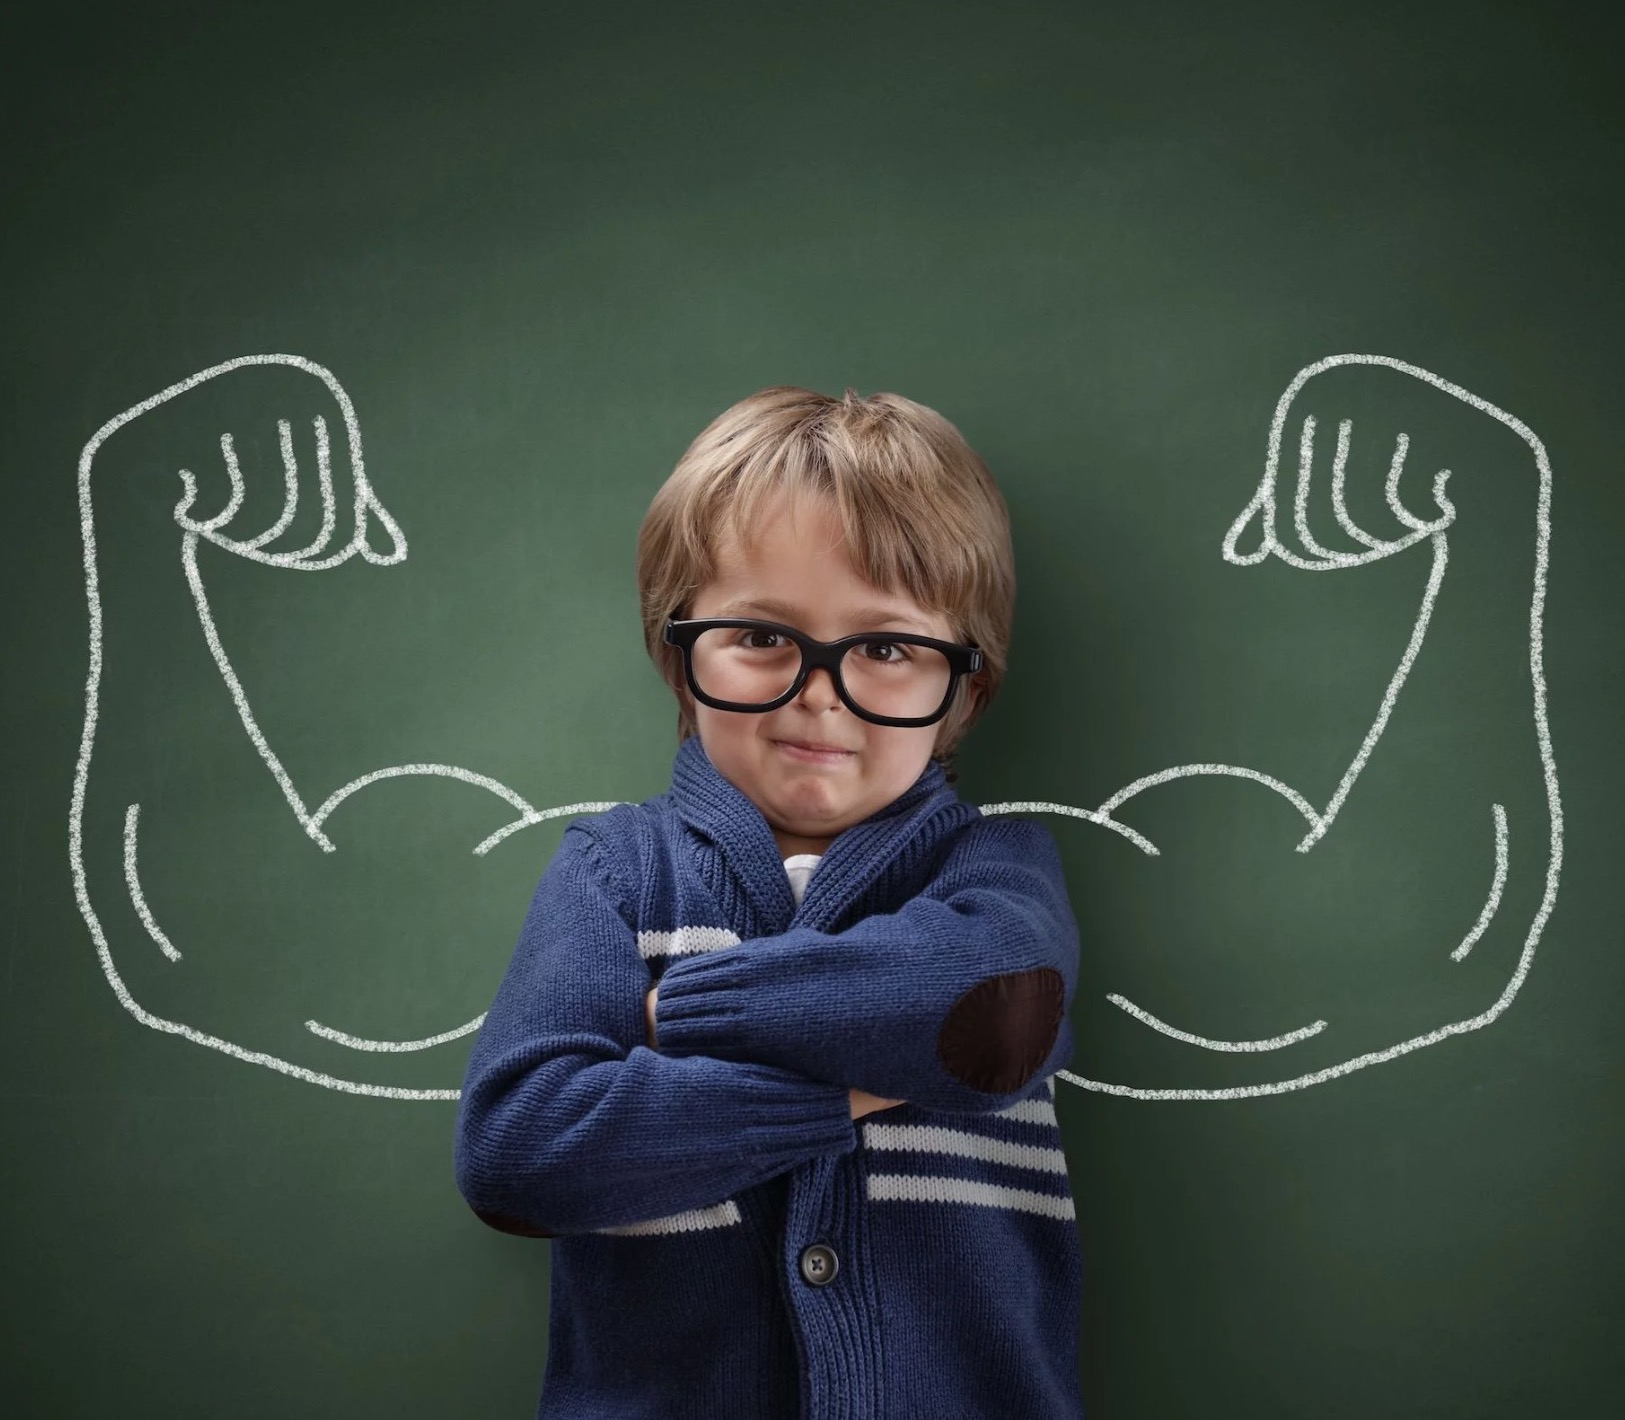 Child with strong arms drawn on chalkboard behind him